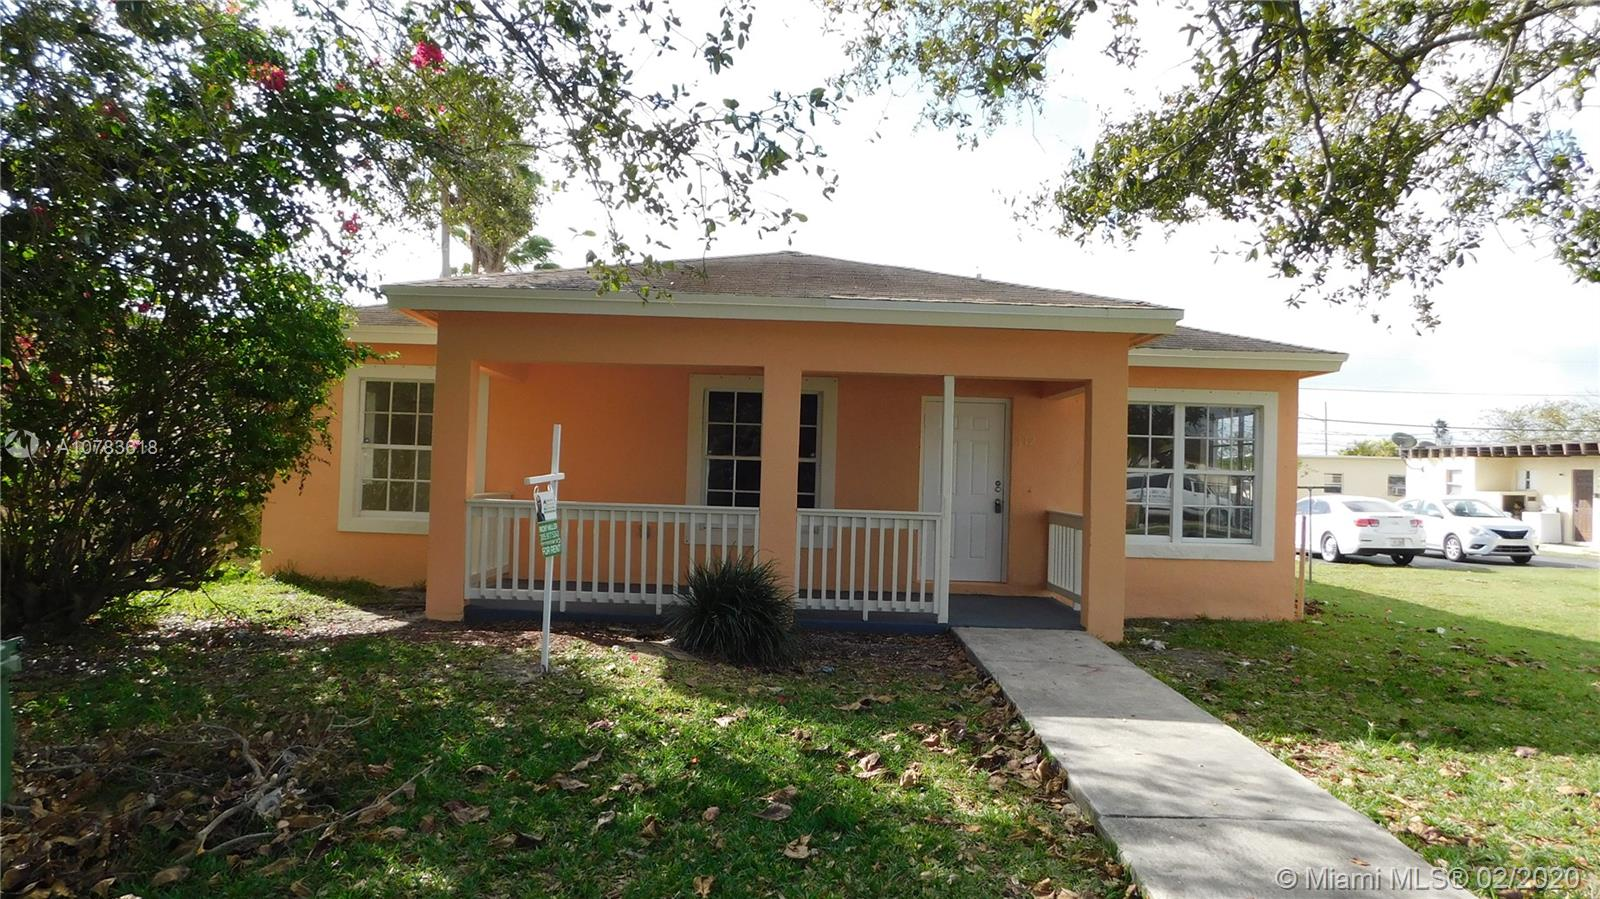 712 SW 6th St, Homestead, FL 33030 - Homestead, FL real estate listing